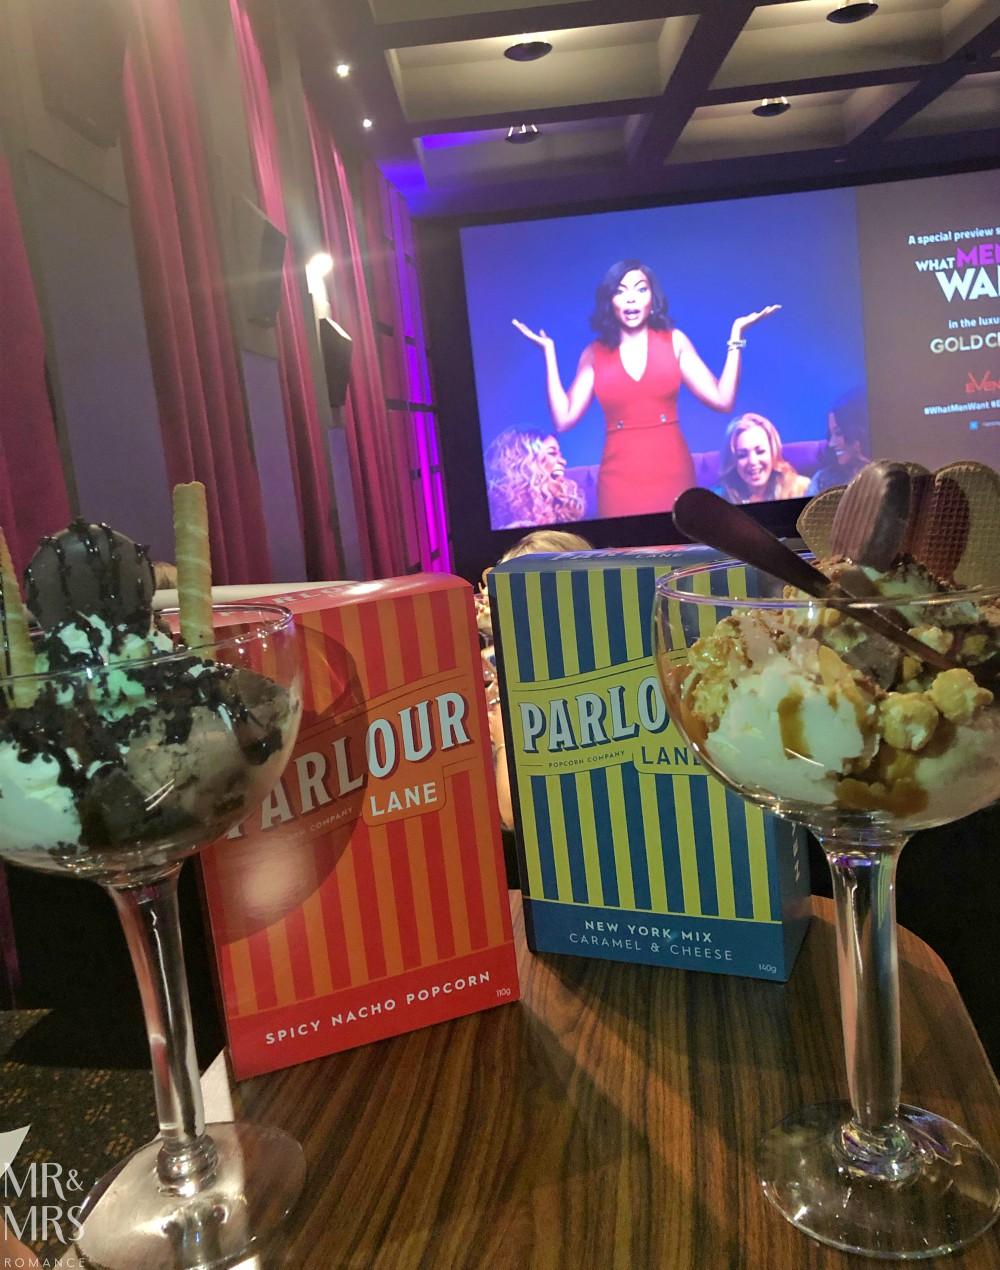 Weekly Edition - Gold Class sundae Arnott's What Men Want